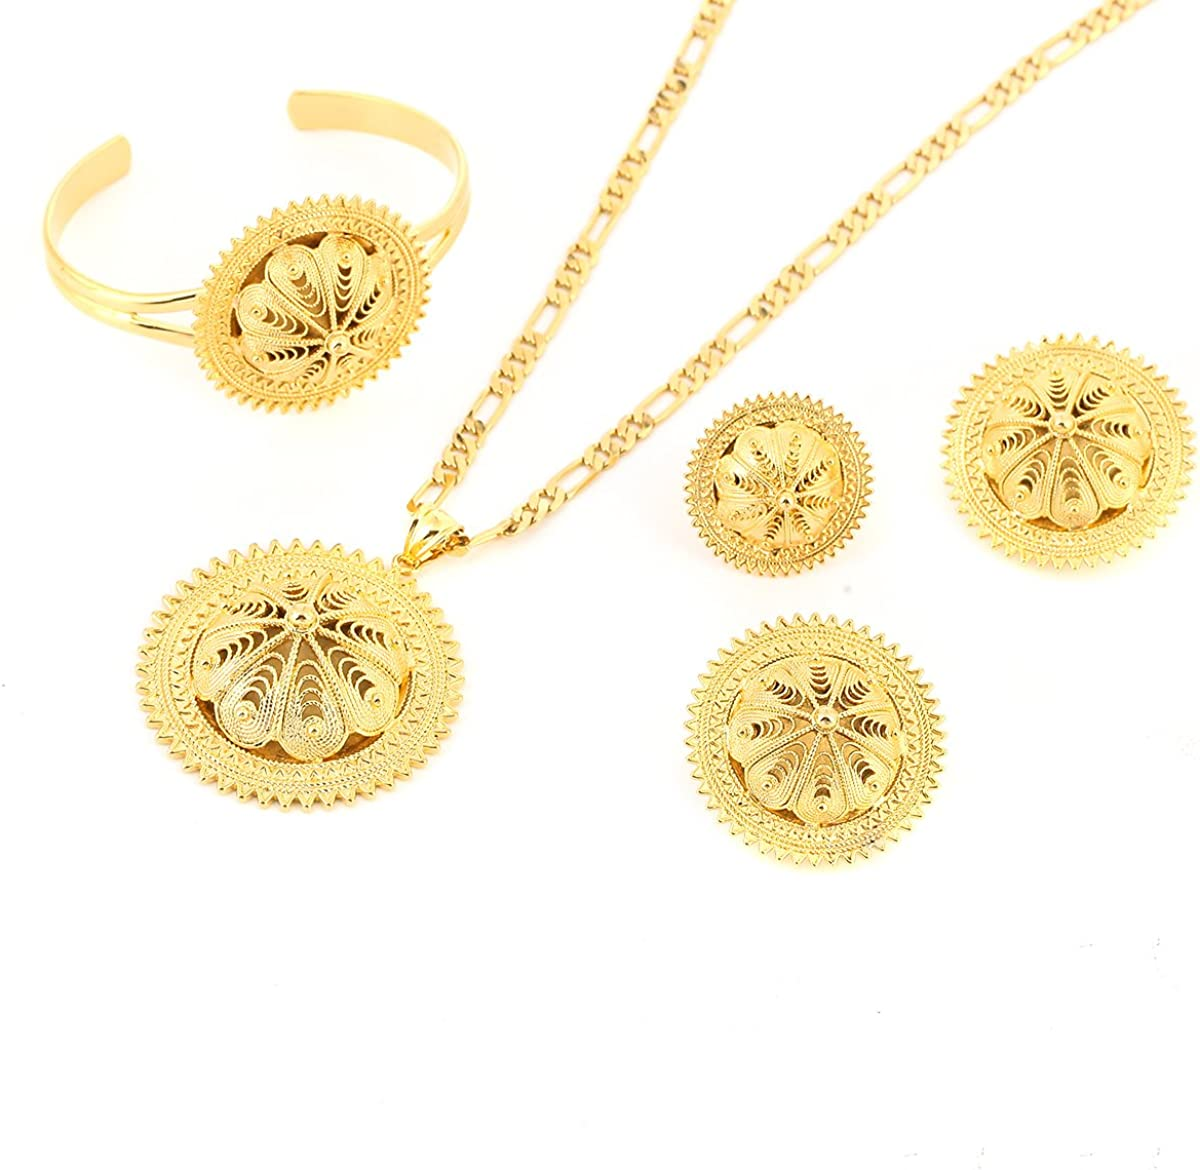 Ethiopian Wedding Jewelry Sets Joias Ouro Gold Filled Jewelry African Bridal Jewelry